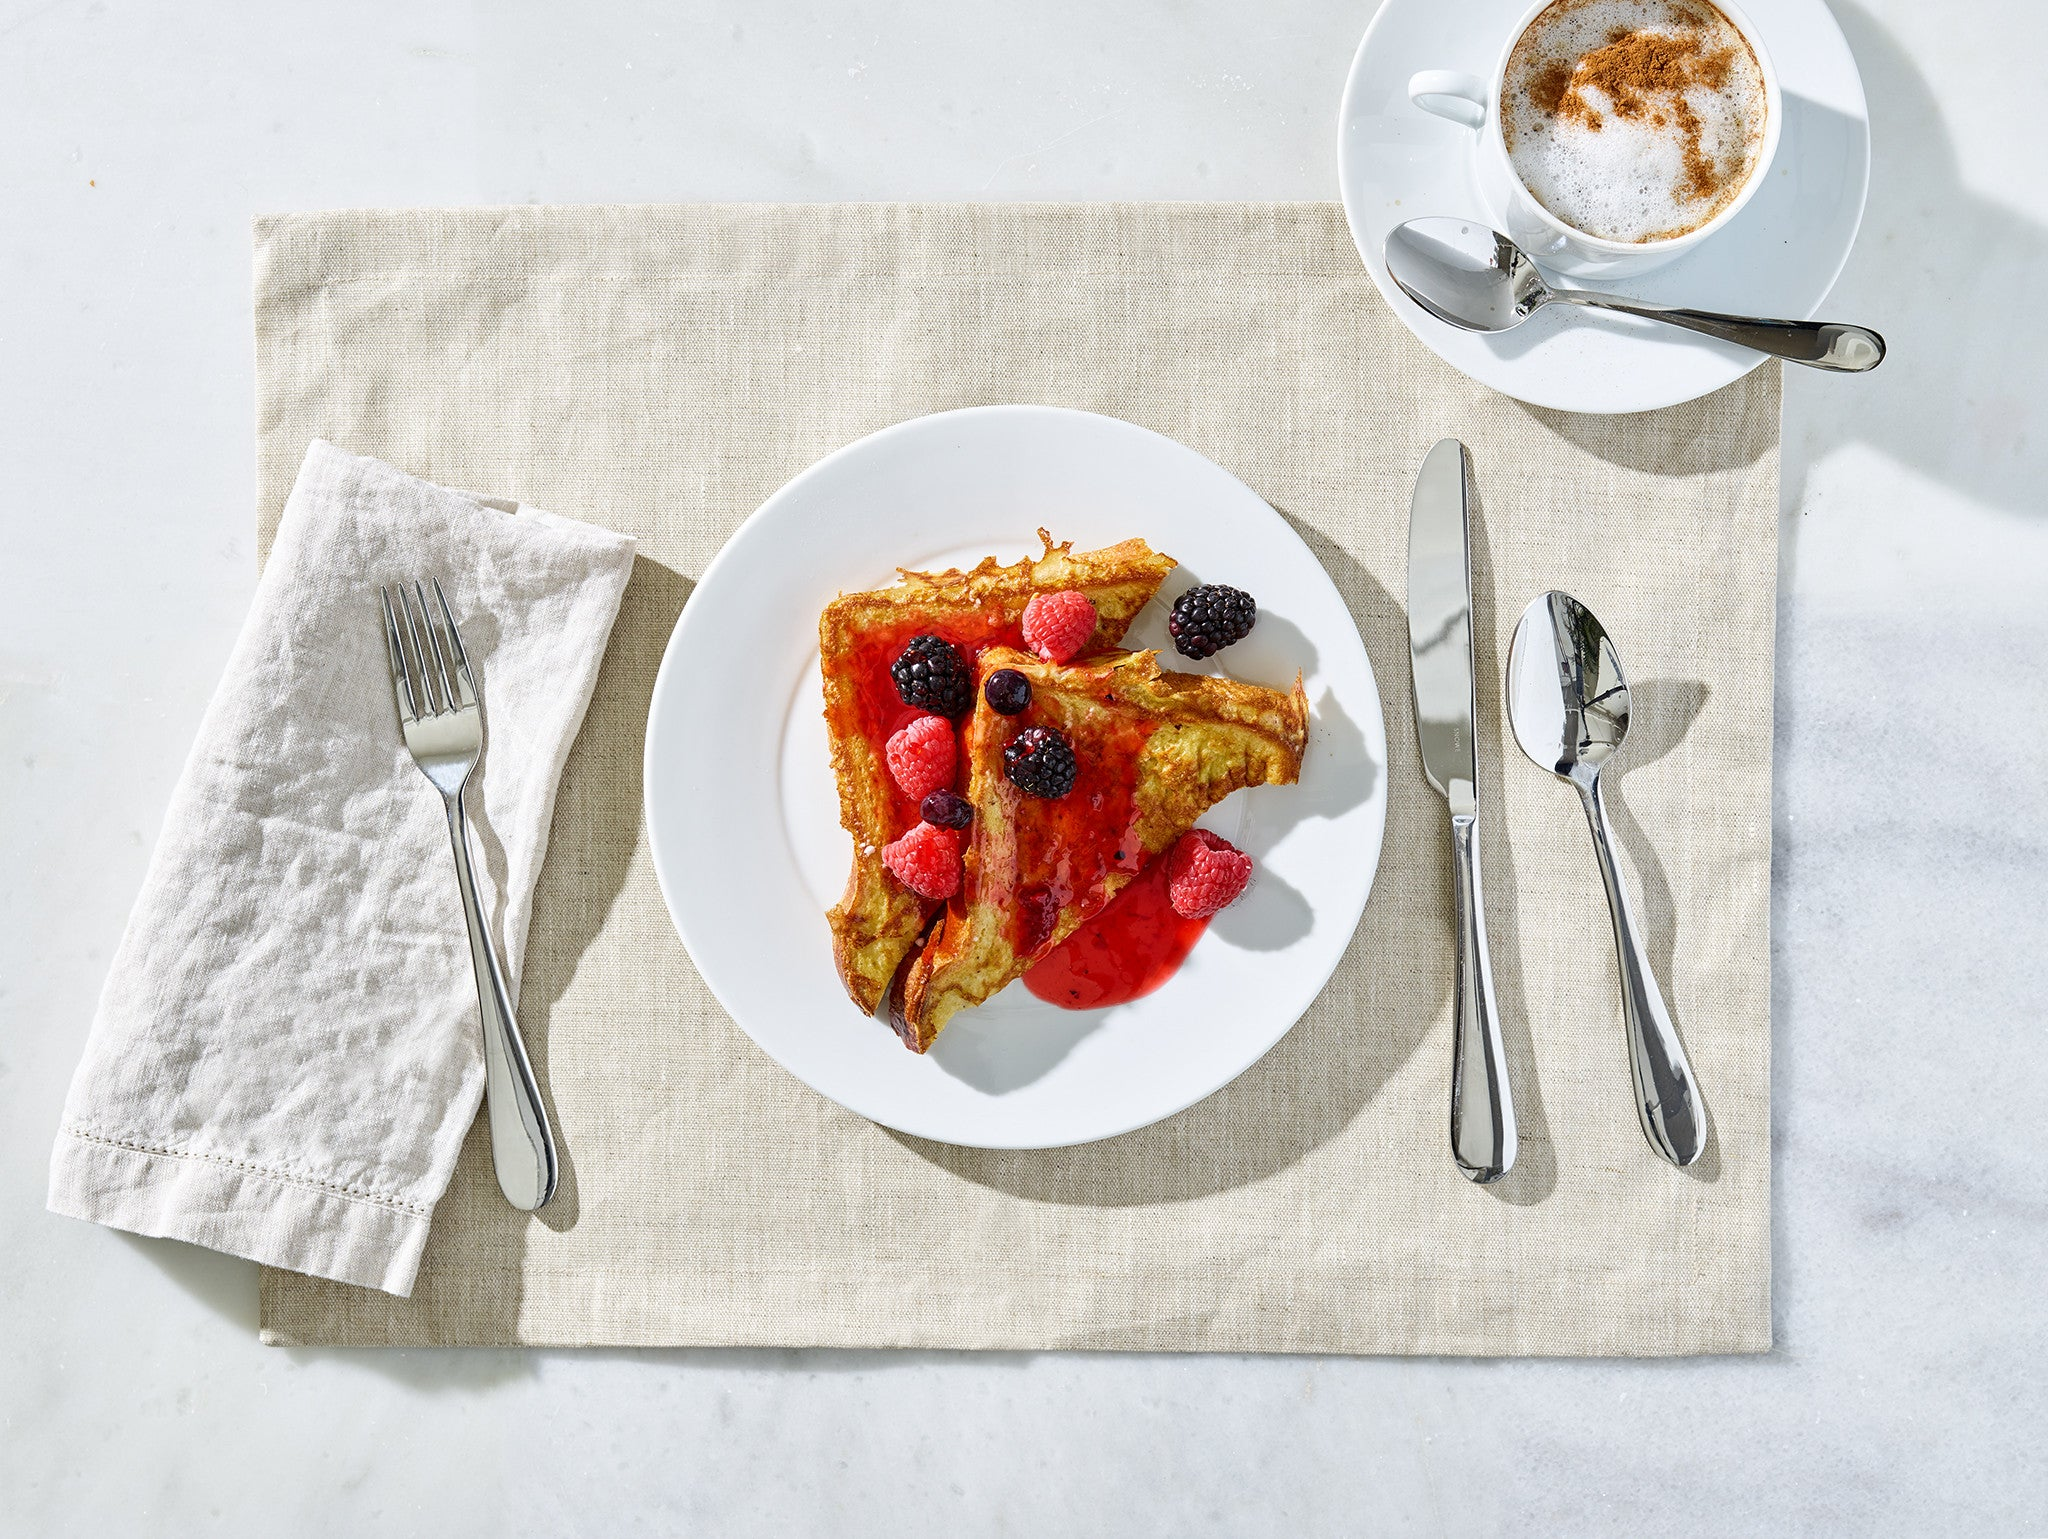 french toast with berries on a plate